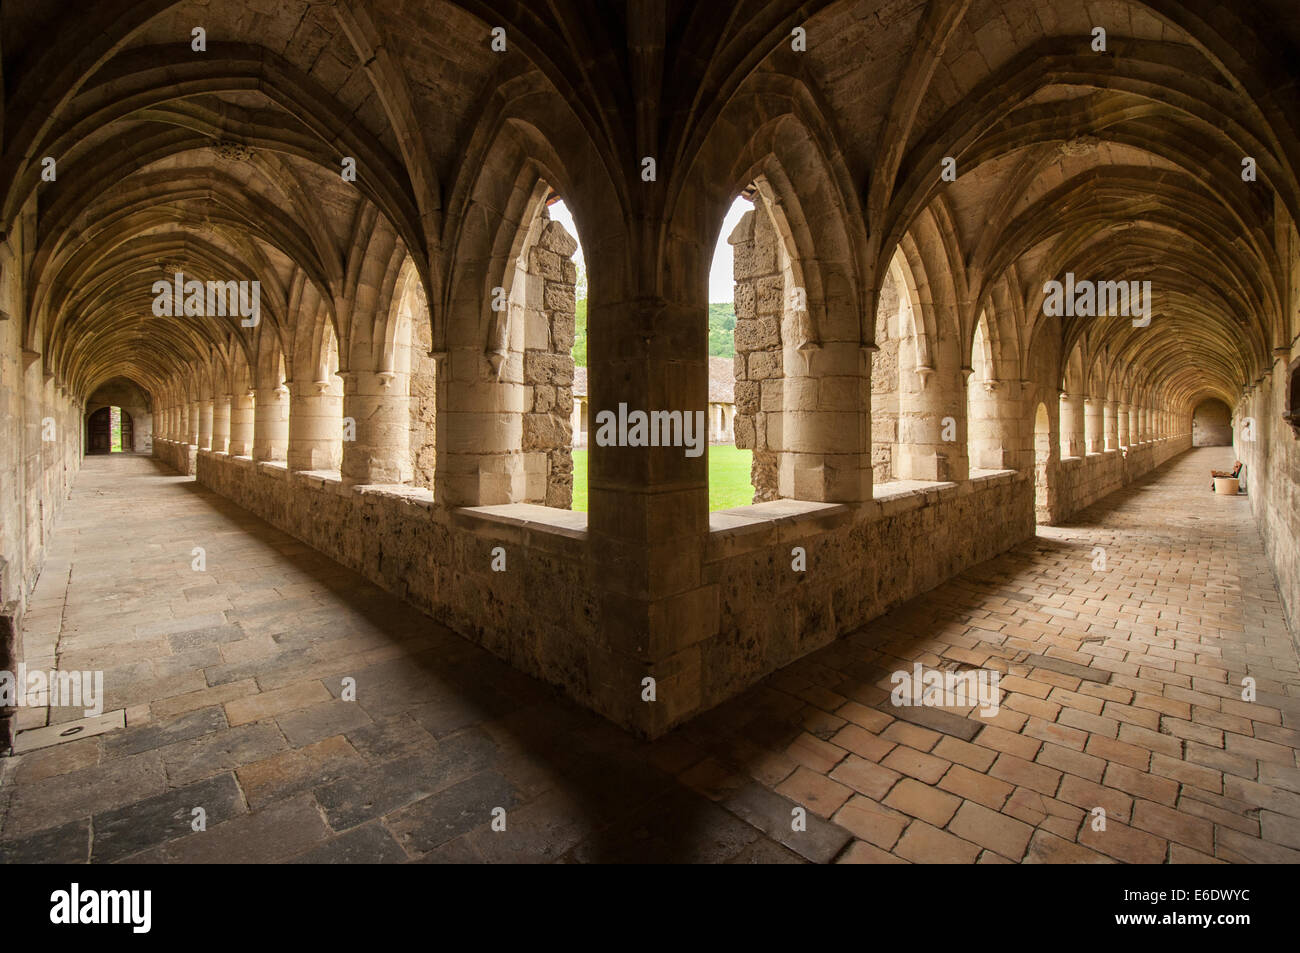 Monastery cloister - Stock Image